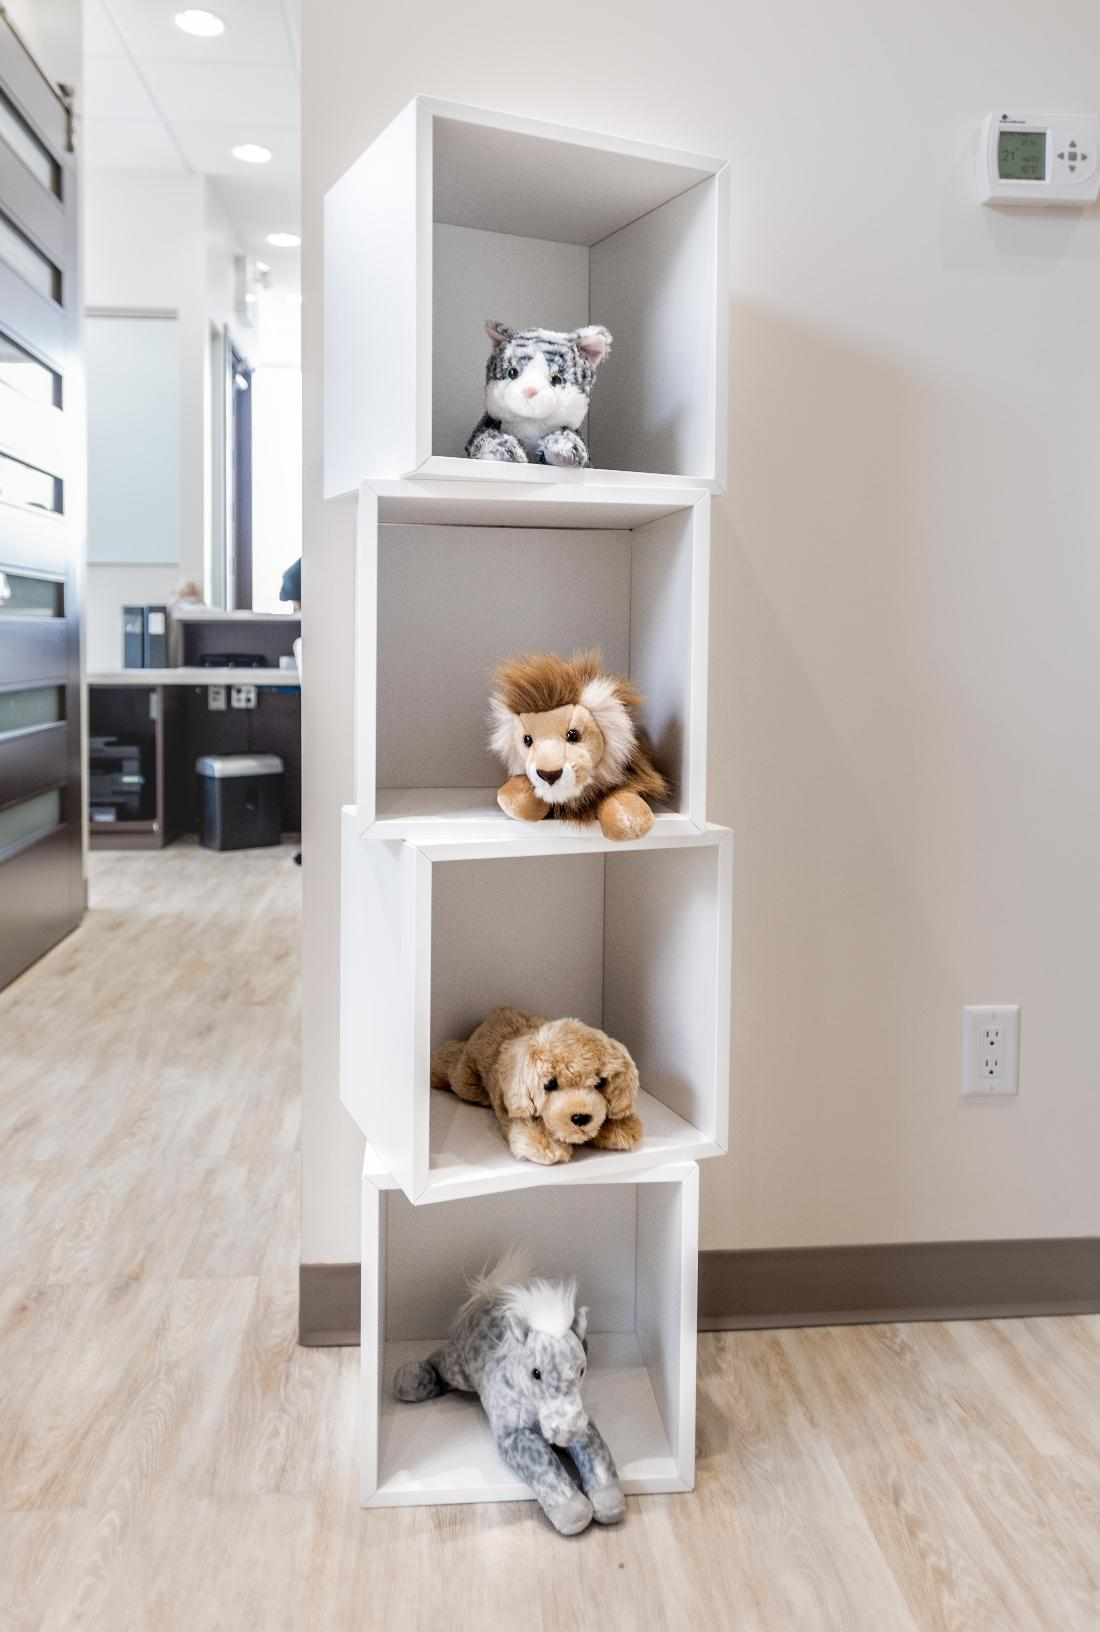 Kids Plush Toys on shelves | Orchards Dental